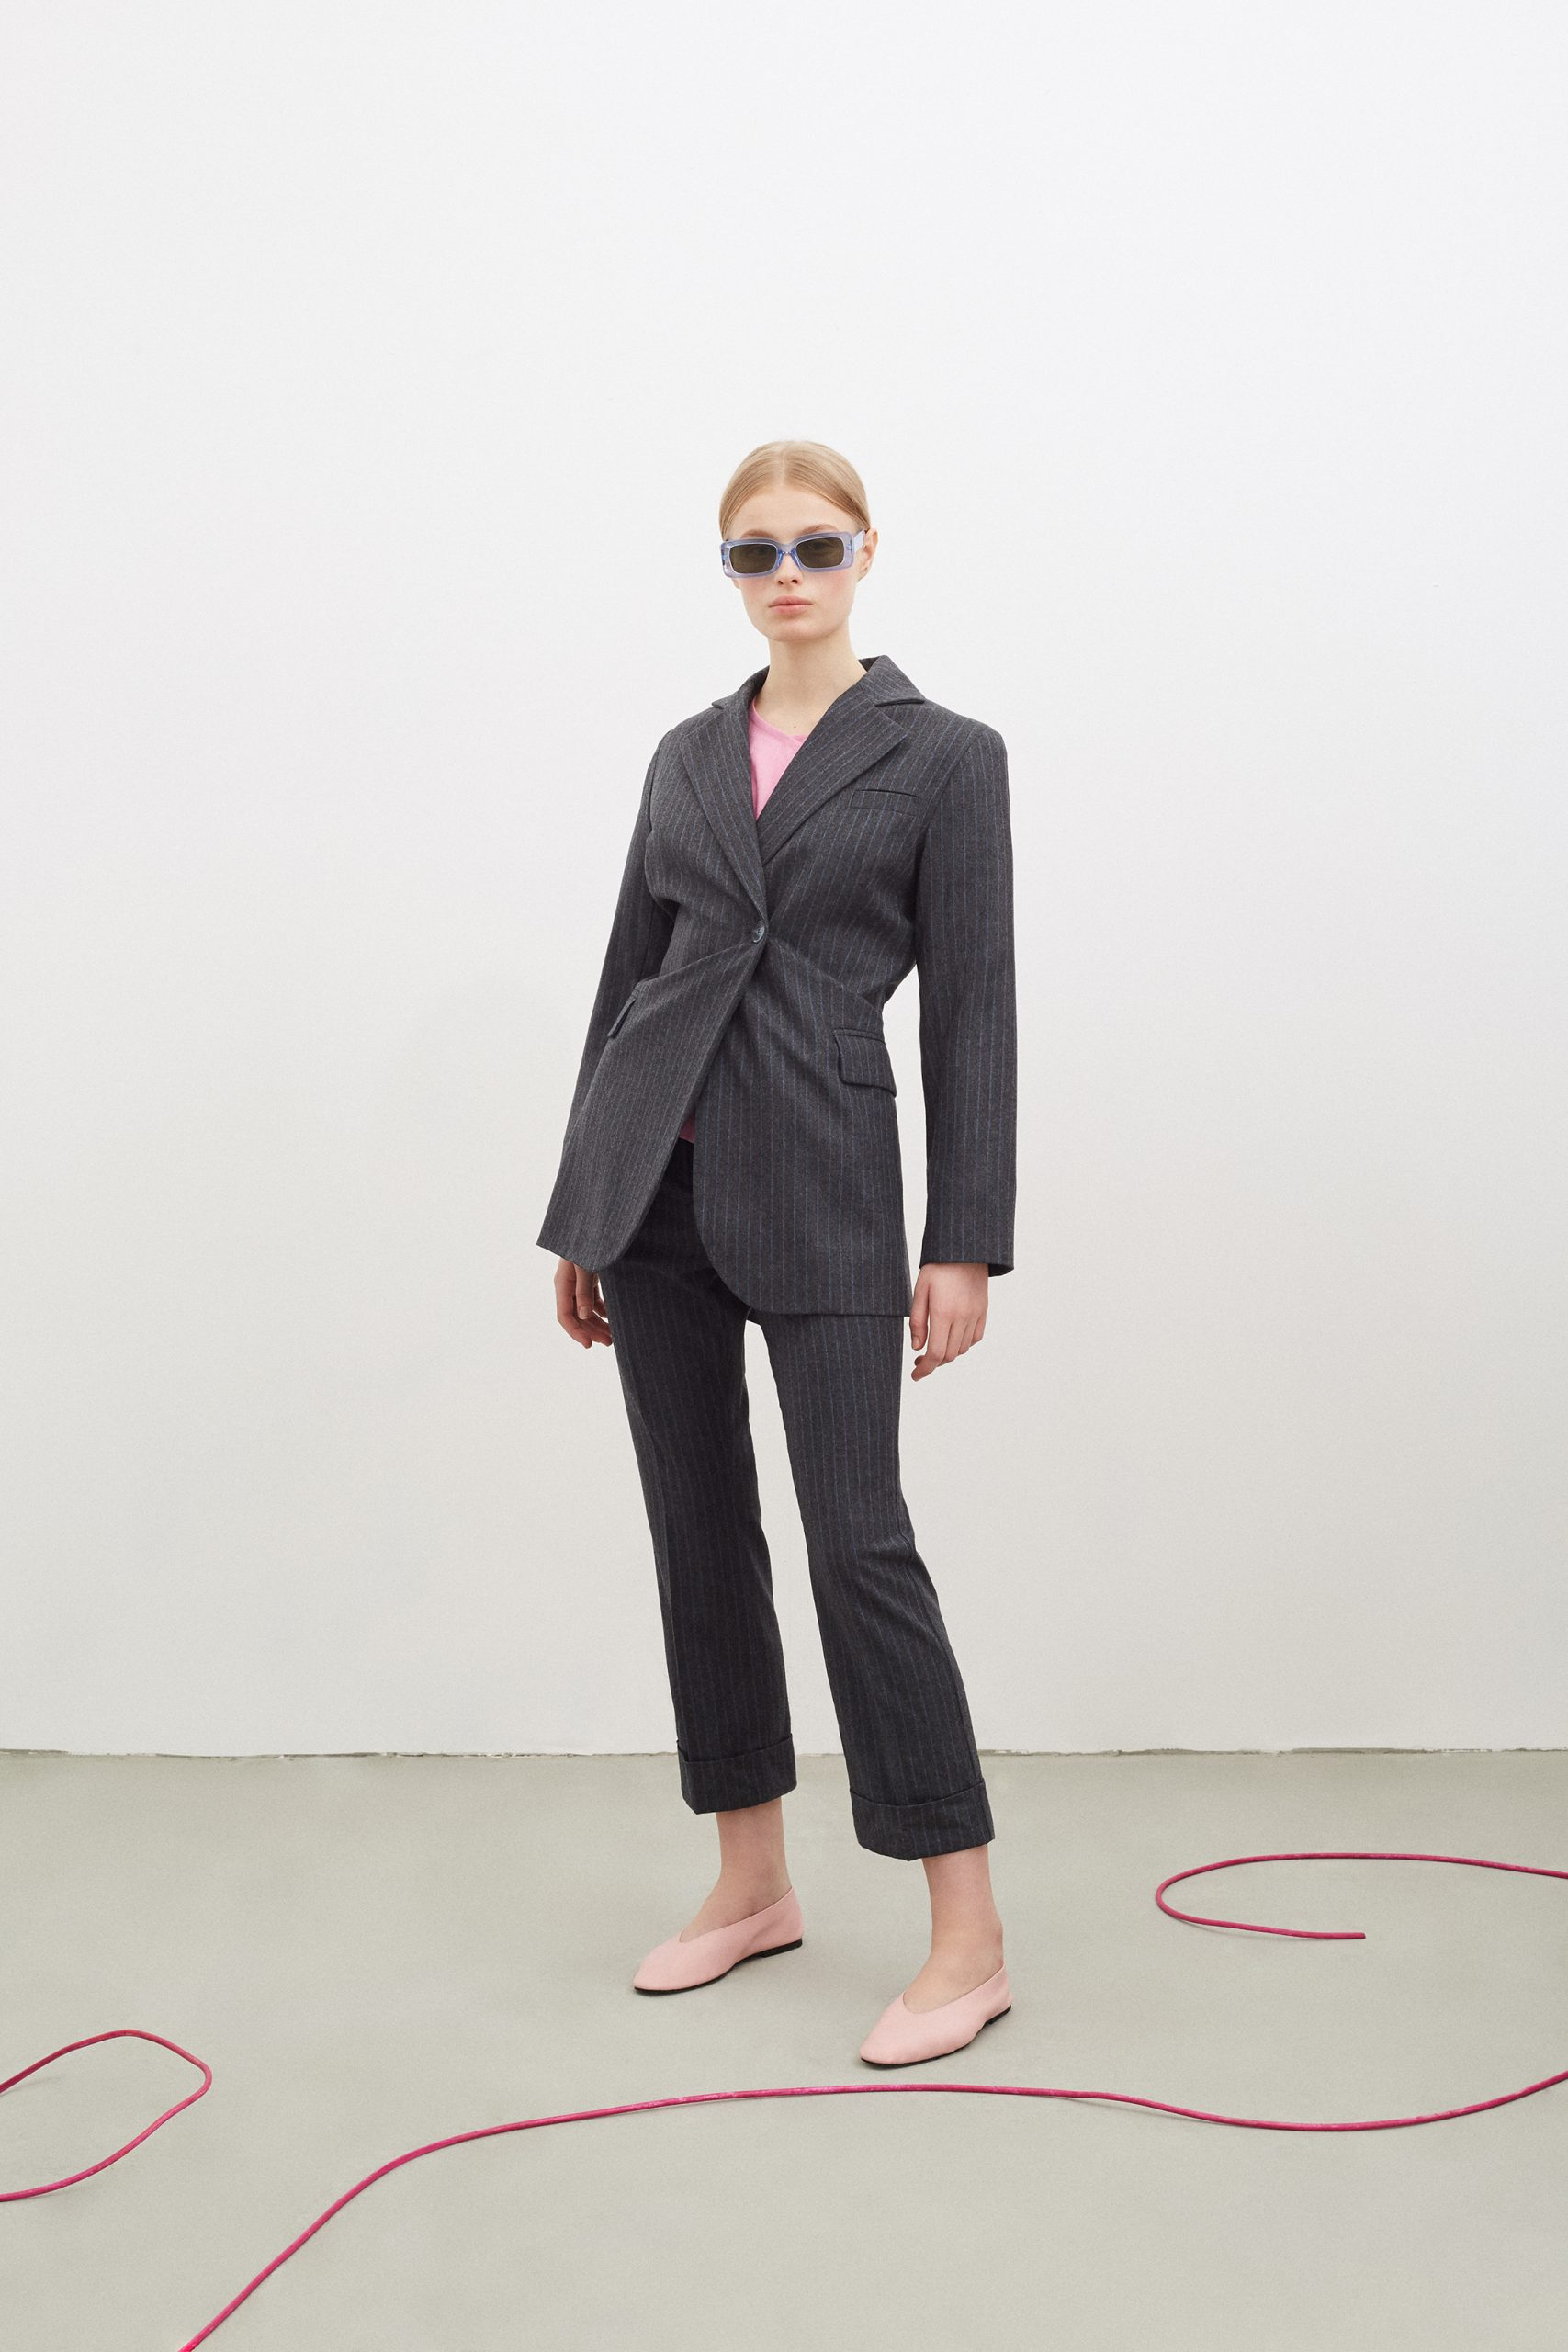 Not For Sale Fall 2020 Fashion Collection Photos